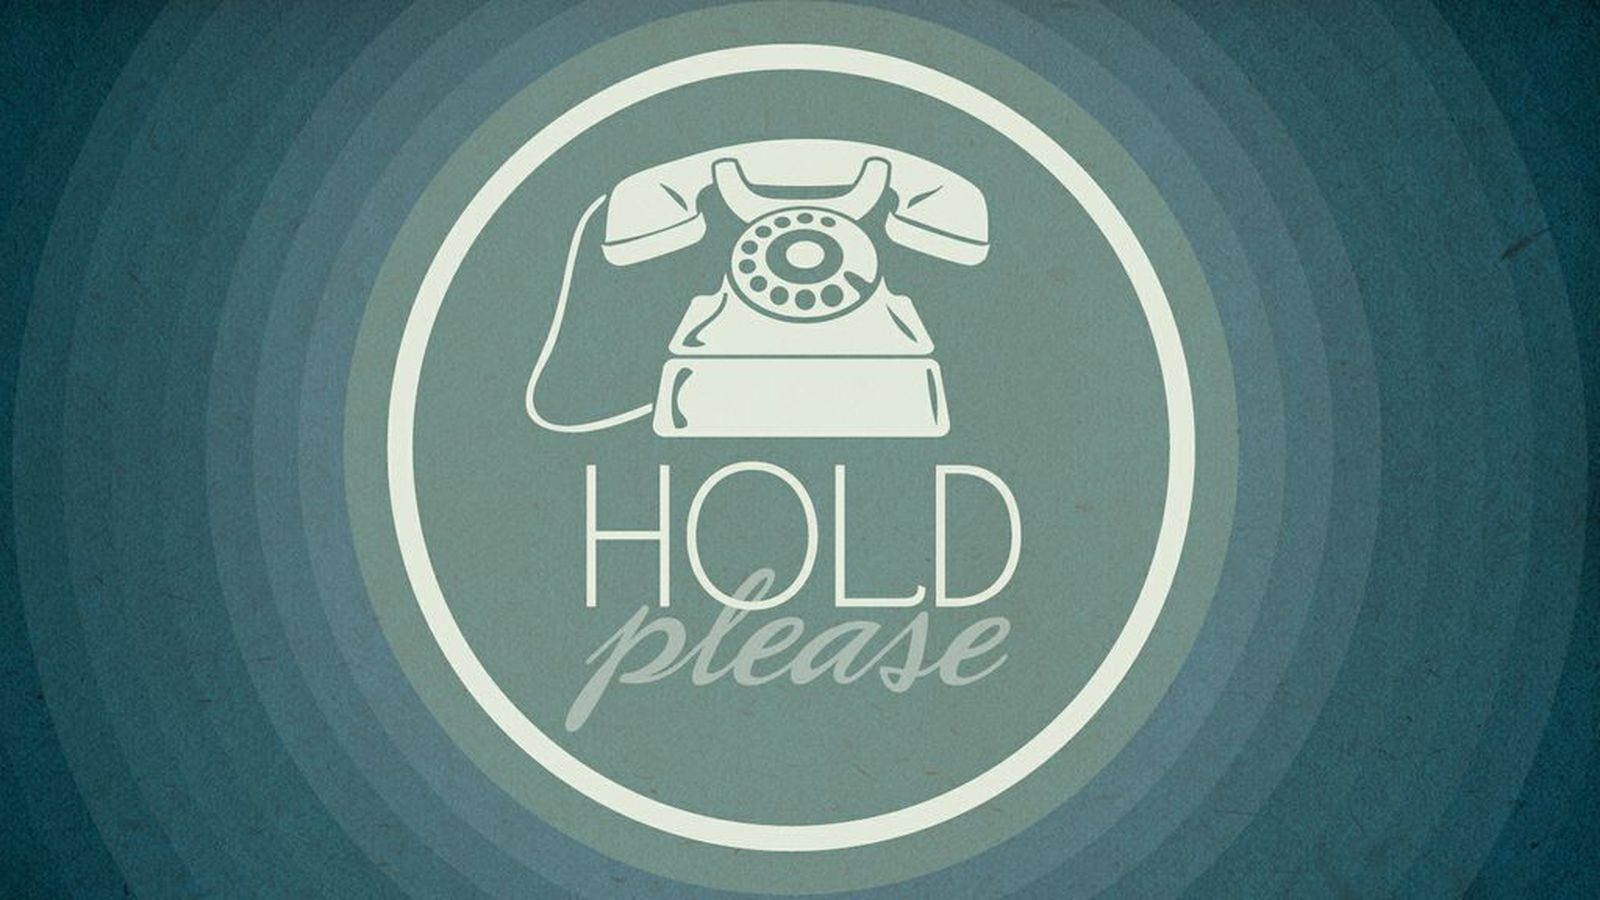 Hold_please.0.0